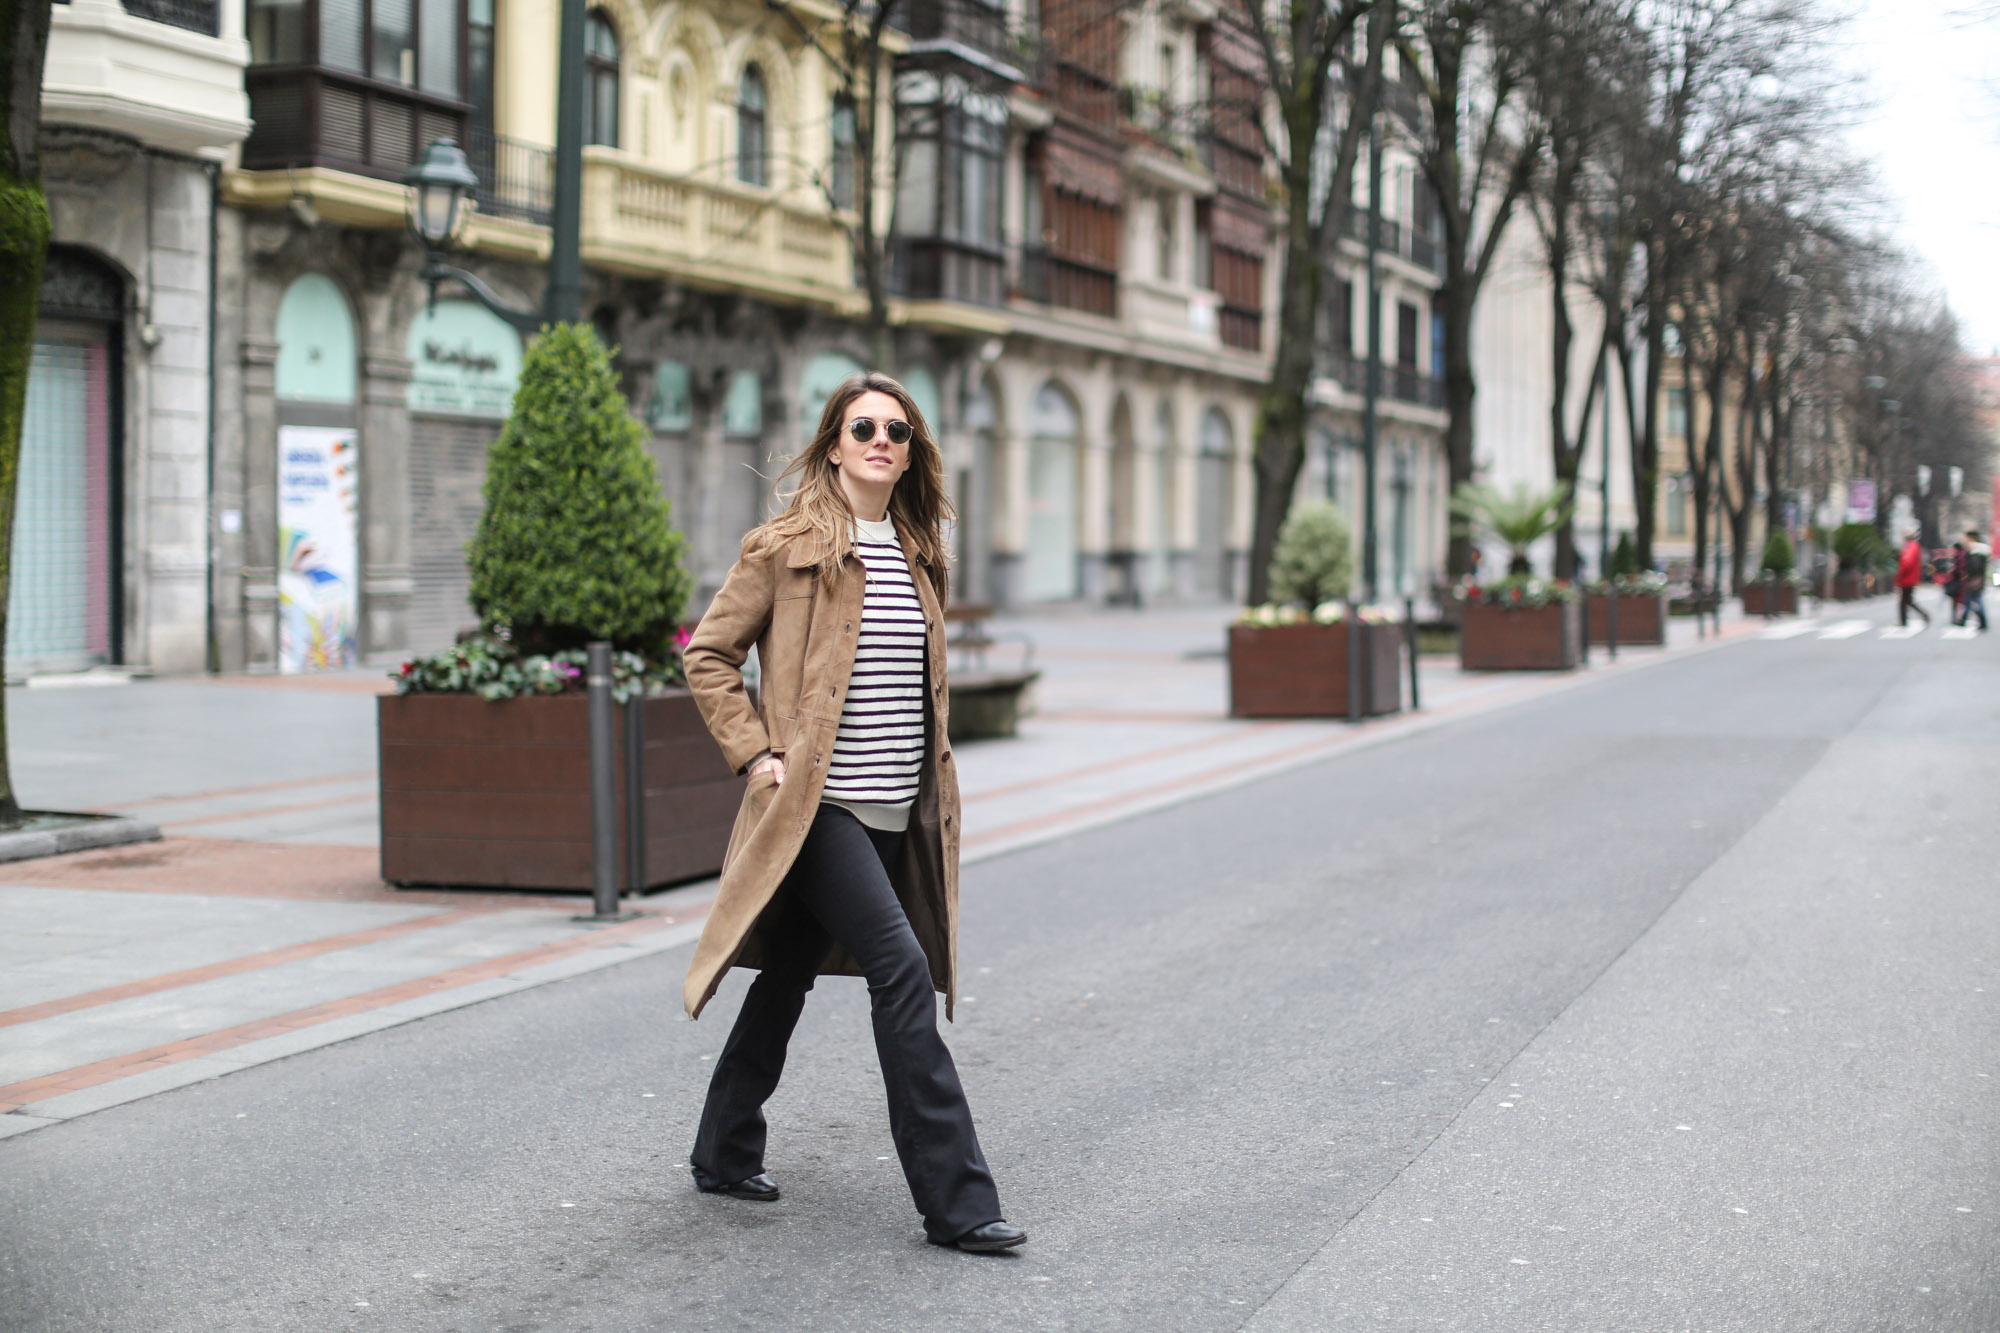 Clochet-streetstyle-black-flared-jeans-suede-vintage-coat-finery-london-bag-13